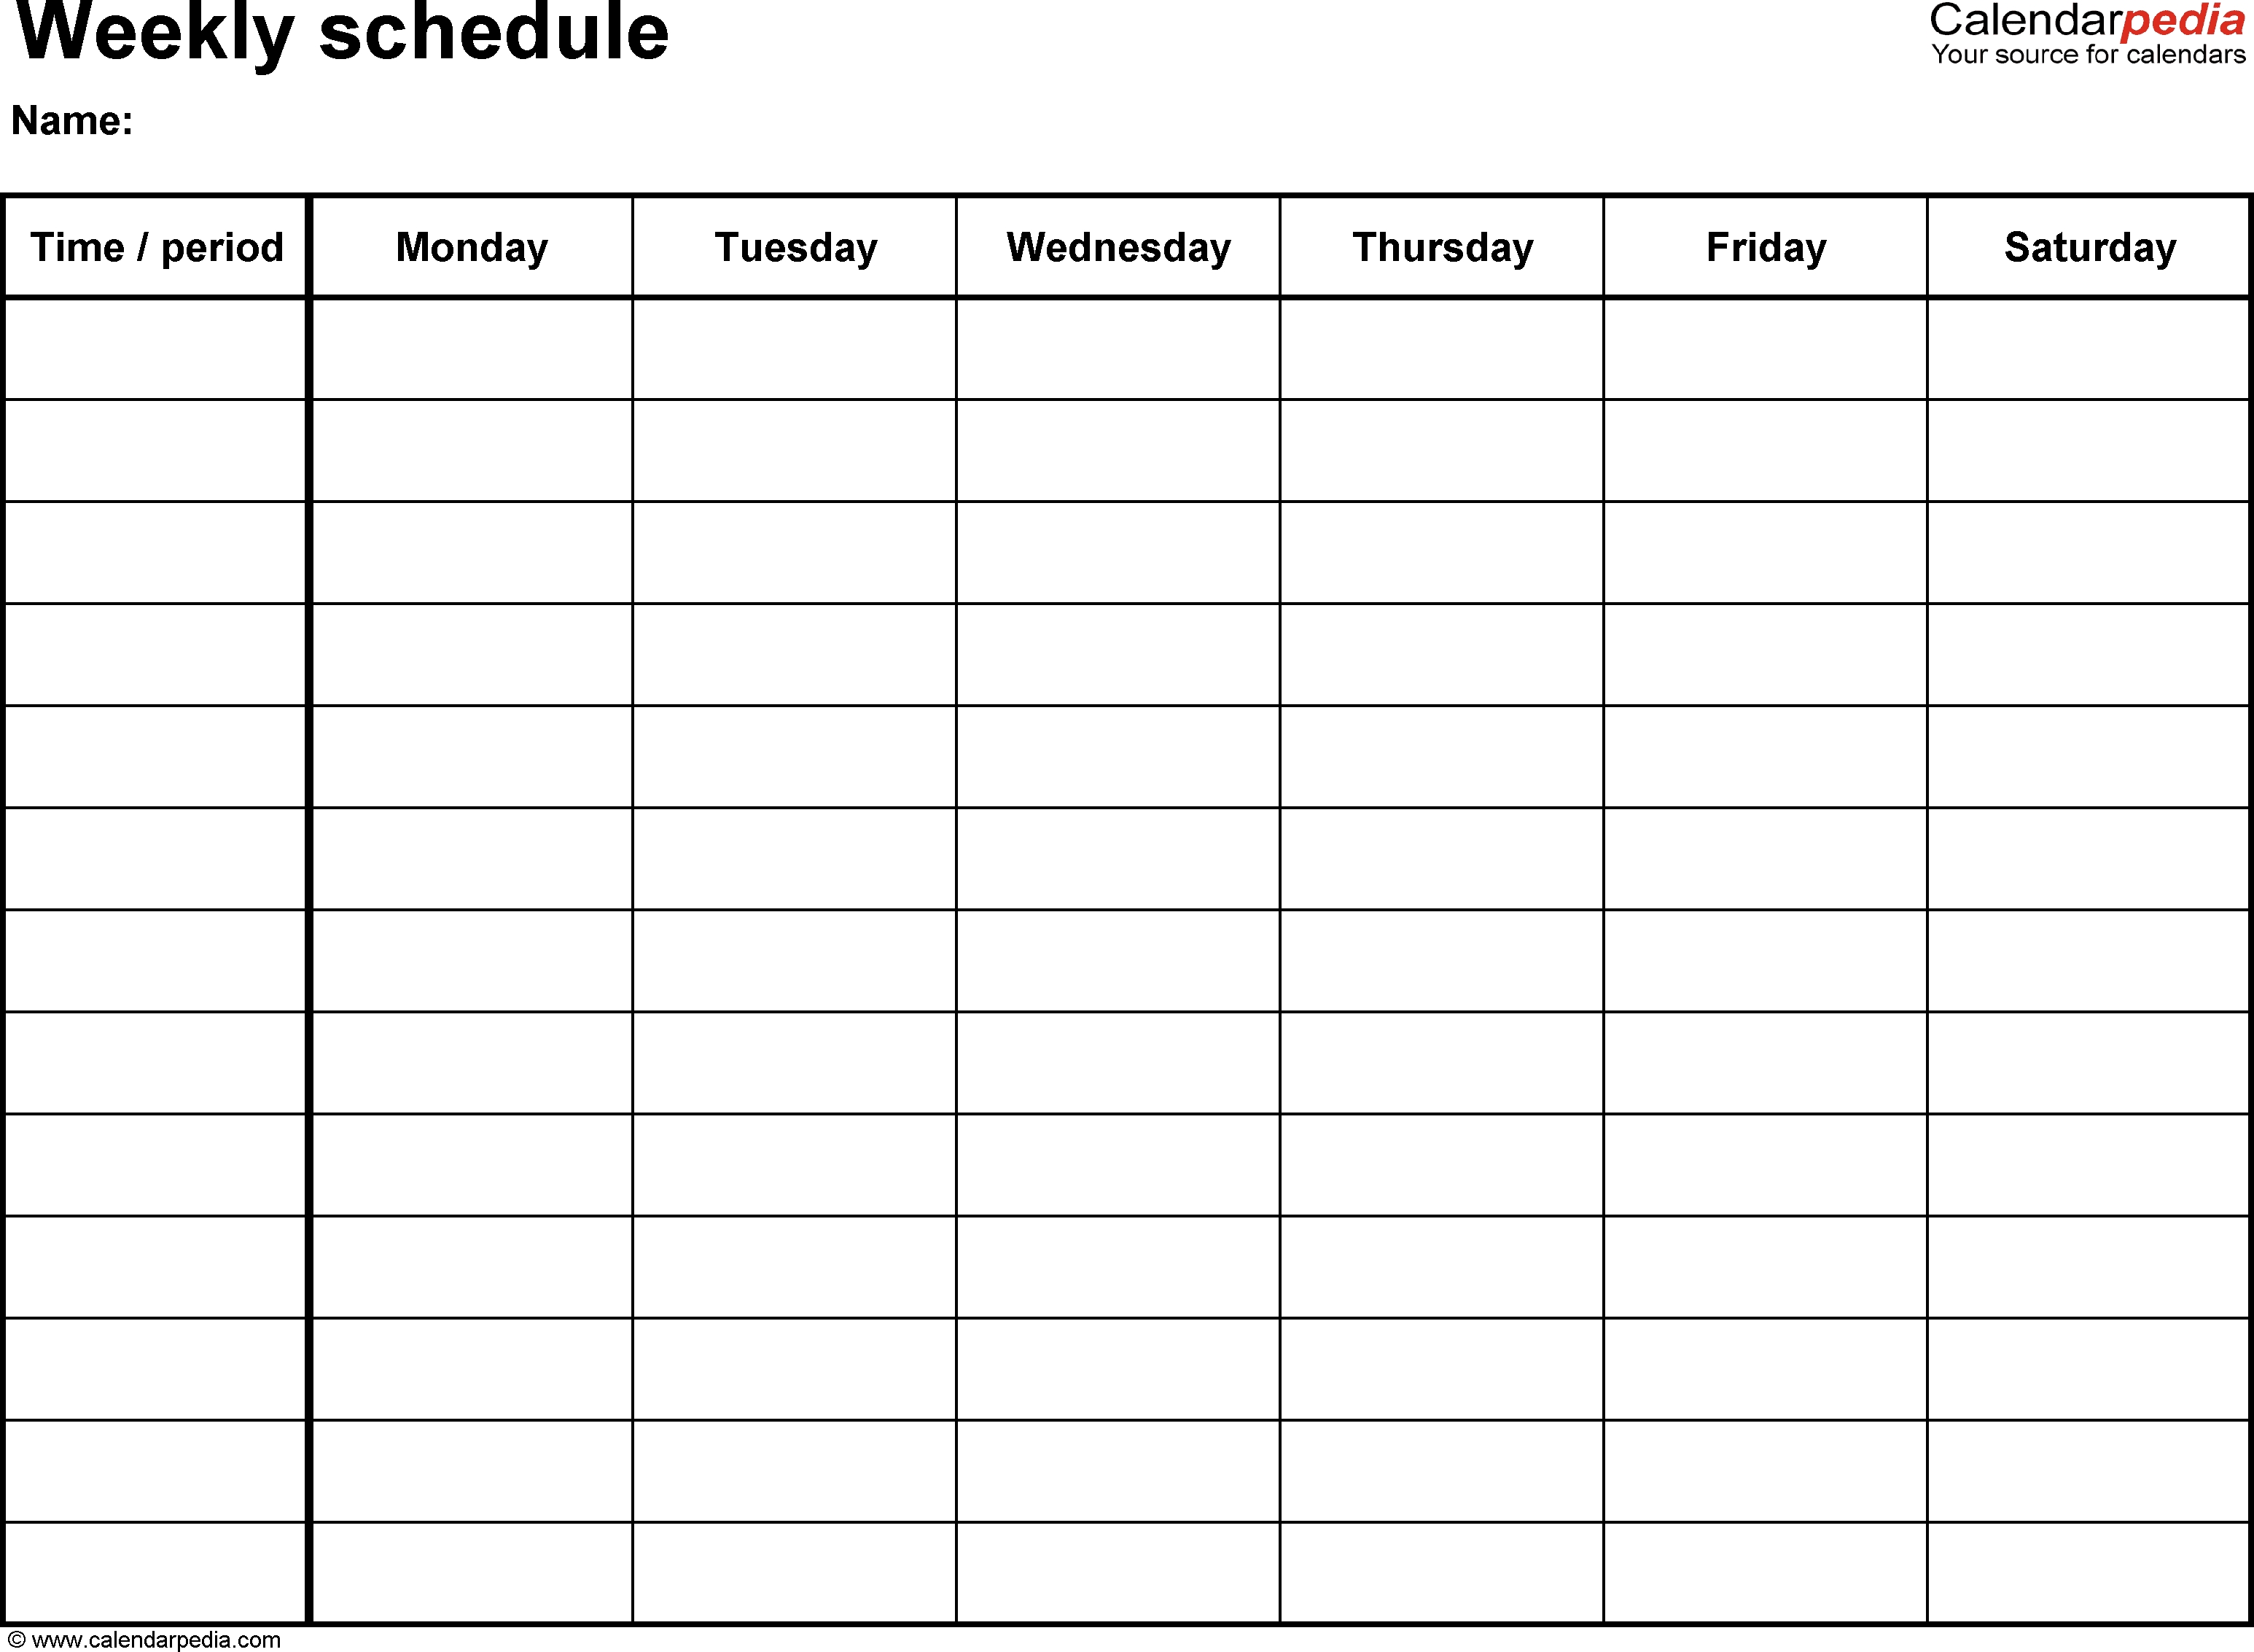 Free Weekly Schedule Templates For Excel - 18 Templates  Blank 4 Week Calendar Printable